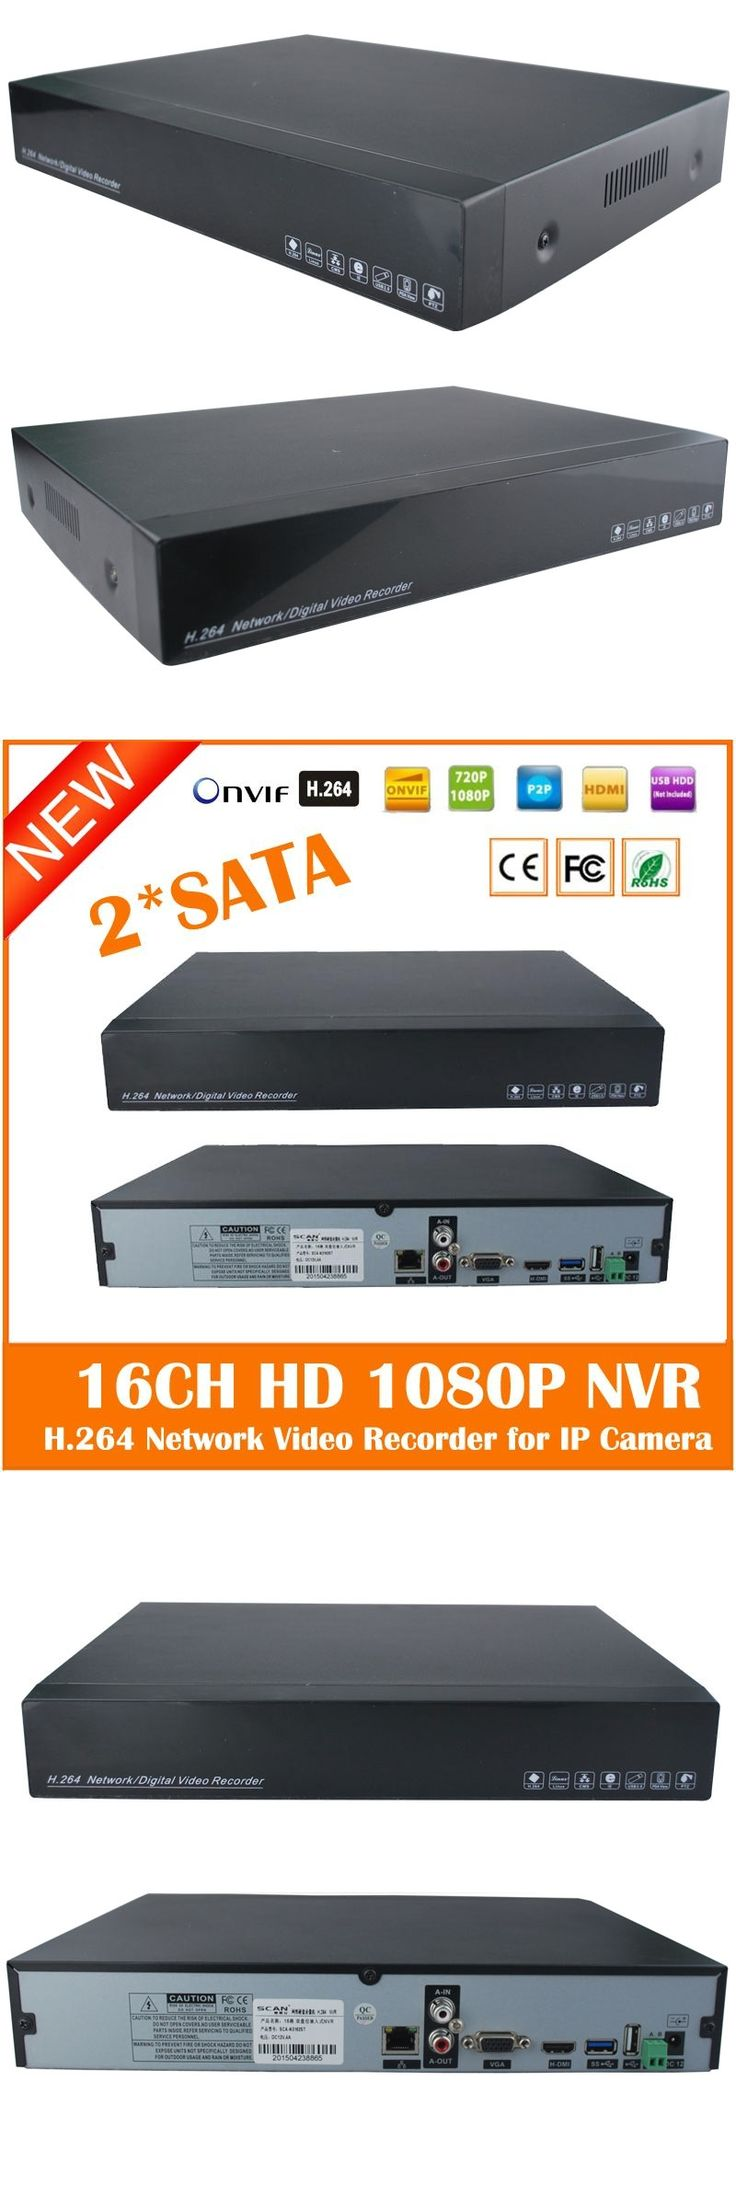 Hd 1080p Nvr16ch 2*sata Hdd Ports Onvif P2p Hdmi Vga Cctv Network Video Recorder For Ip Camera Surveillance System Freeshipping